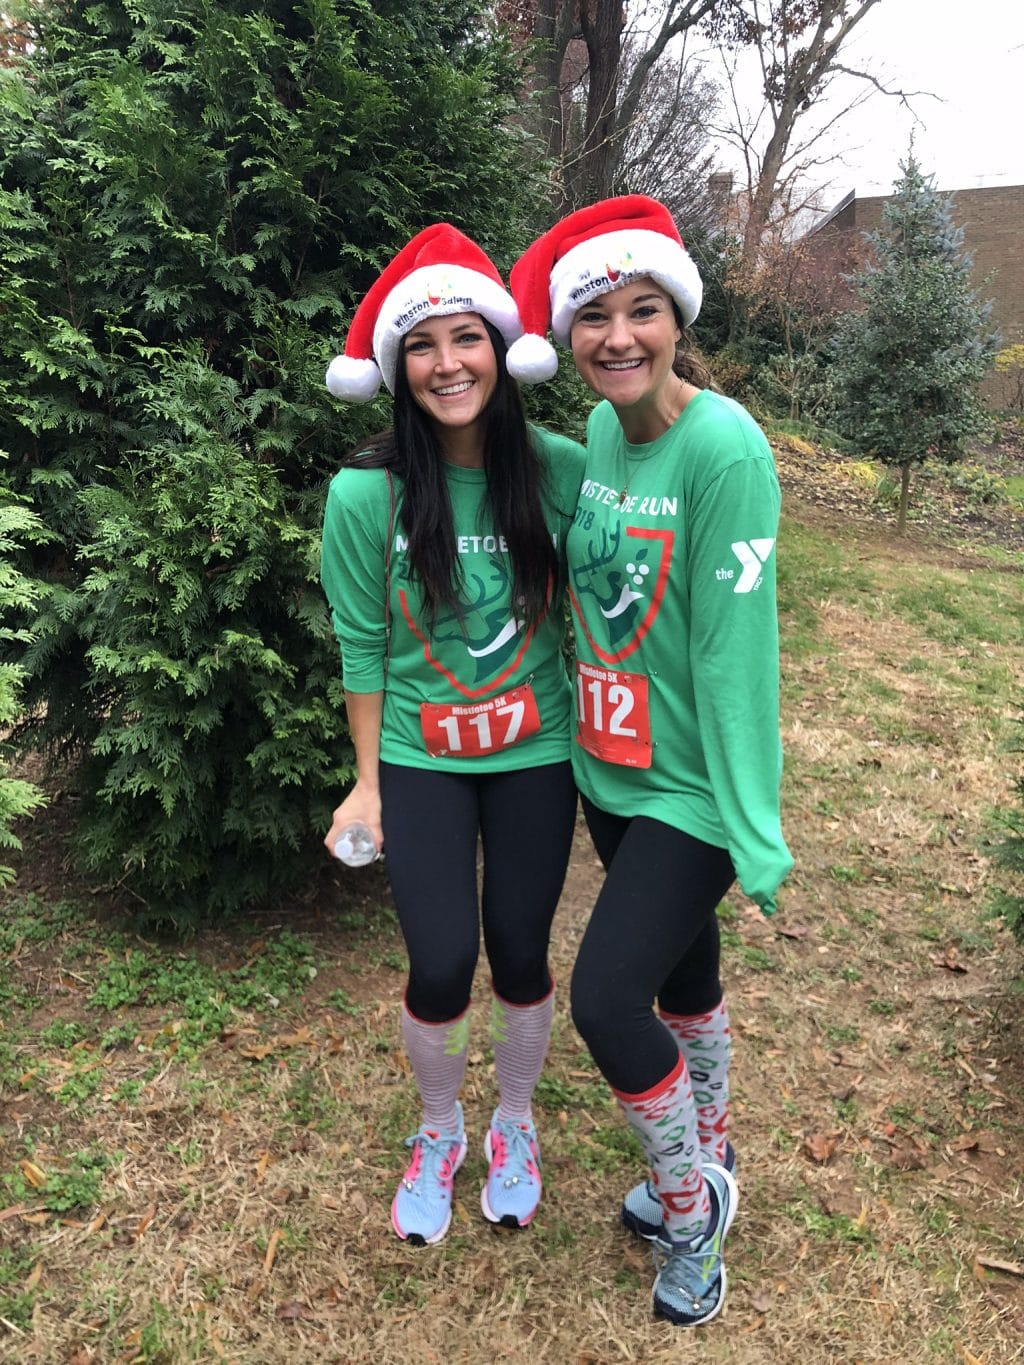 Mistletoe Run, Winston Salem, Heather Brown, Molly Wey, Stilettos and Diapers